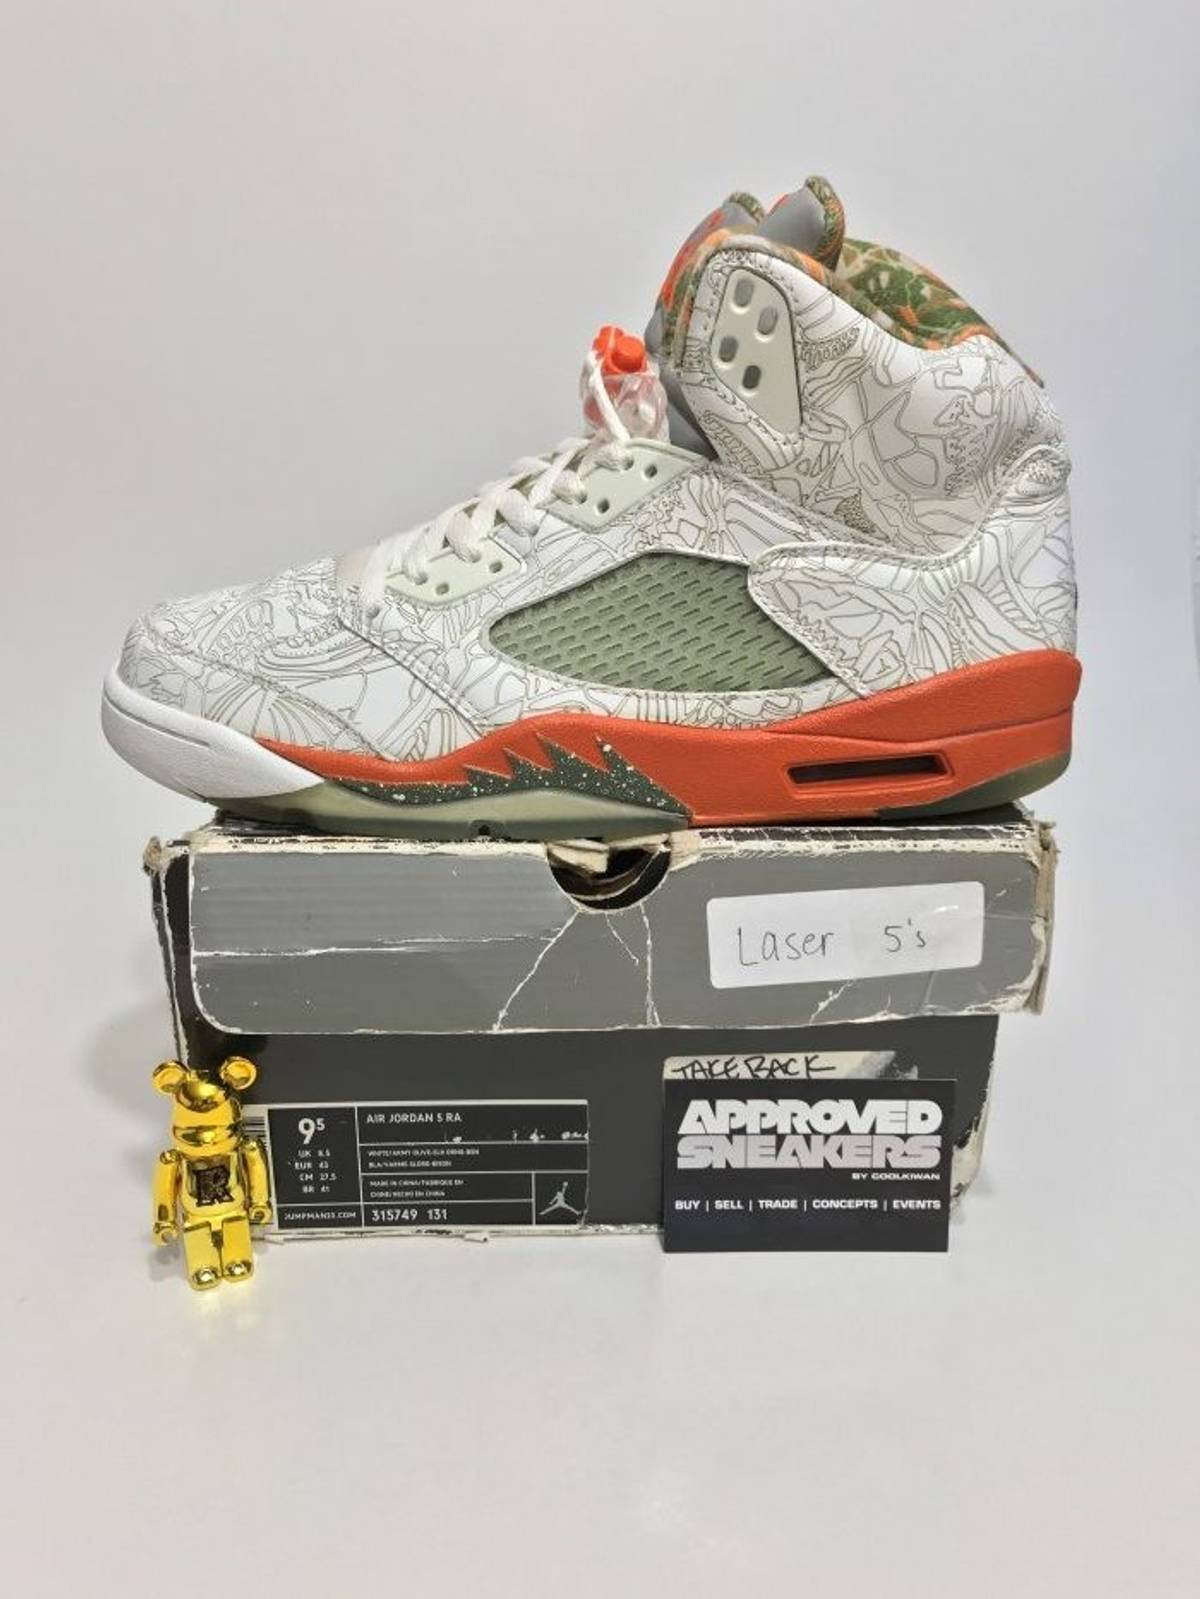 buy online 95955 2043c ... Nike Air Jordan 5 Retro RA Laser Orange 315749 131 US9.5 43 bred black  ...